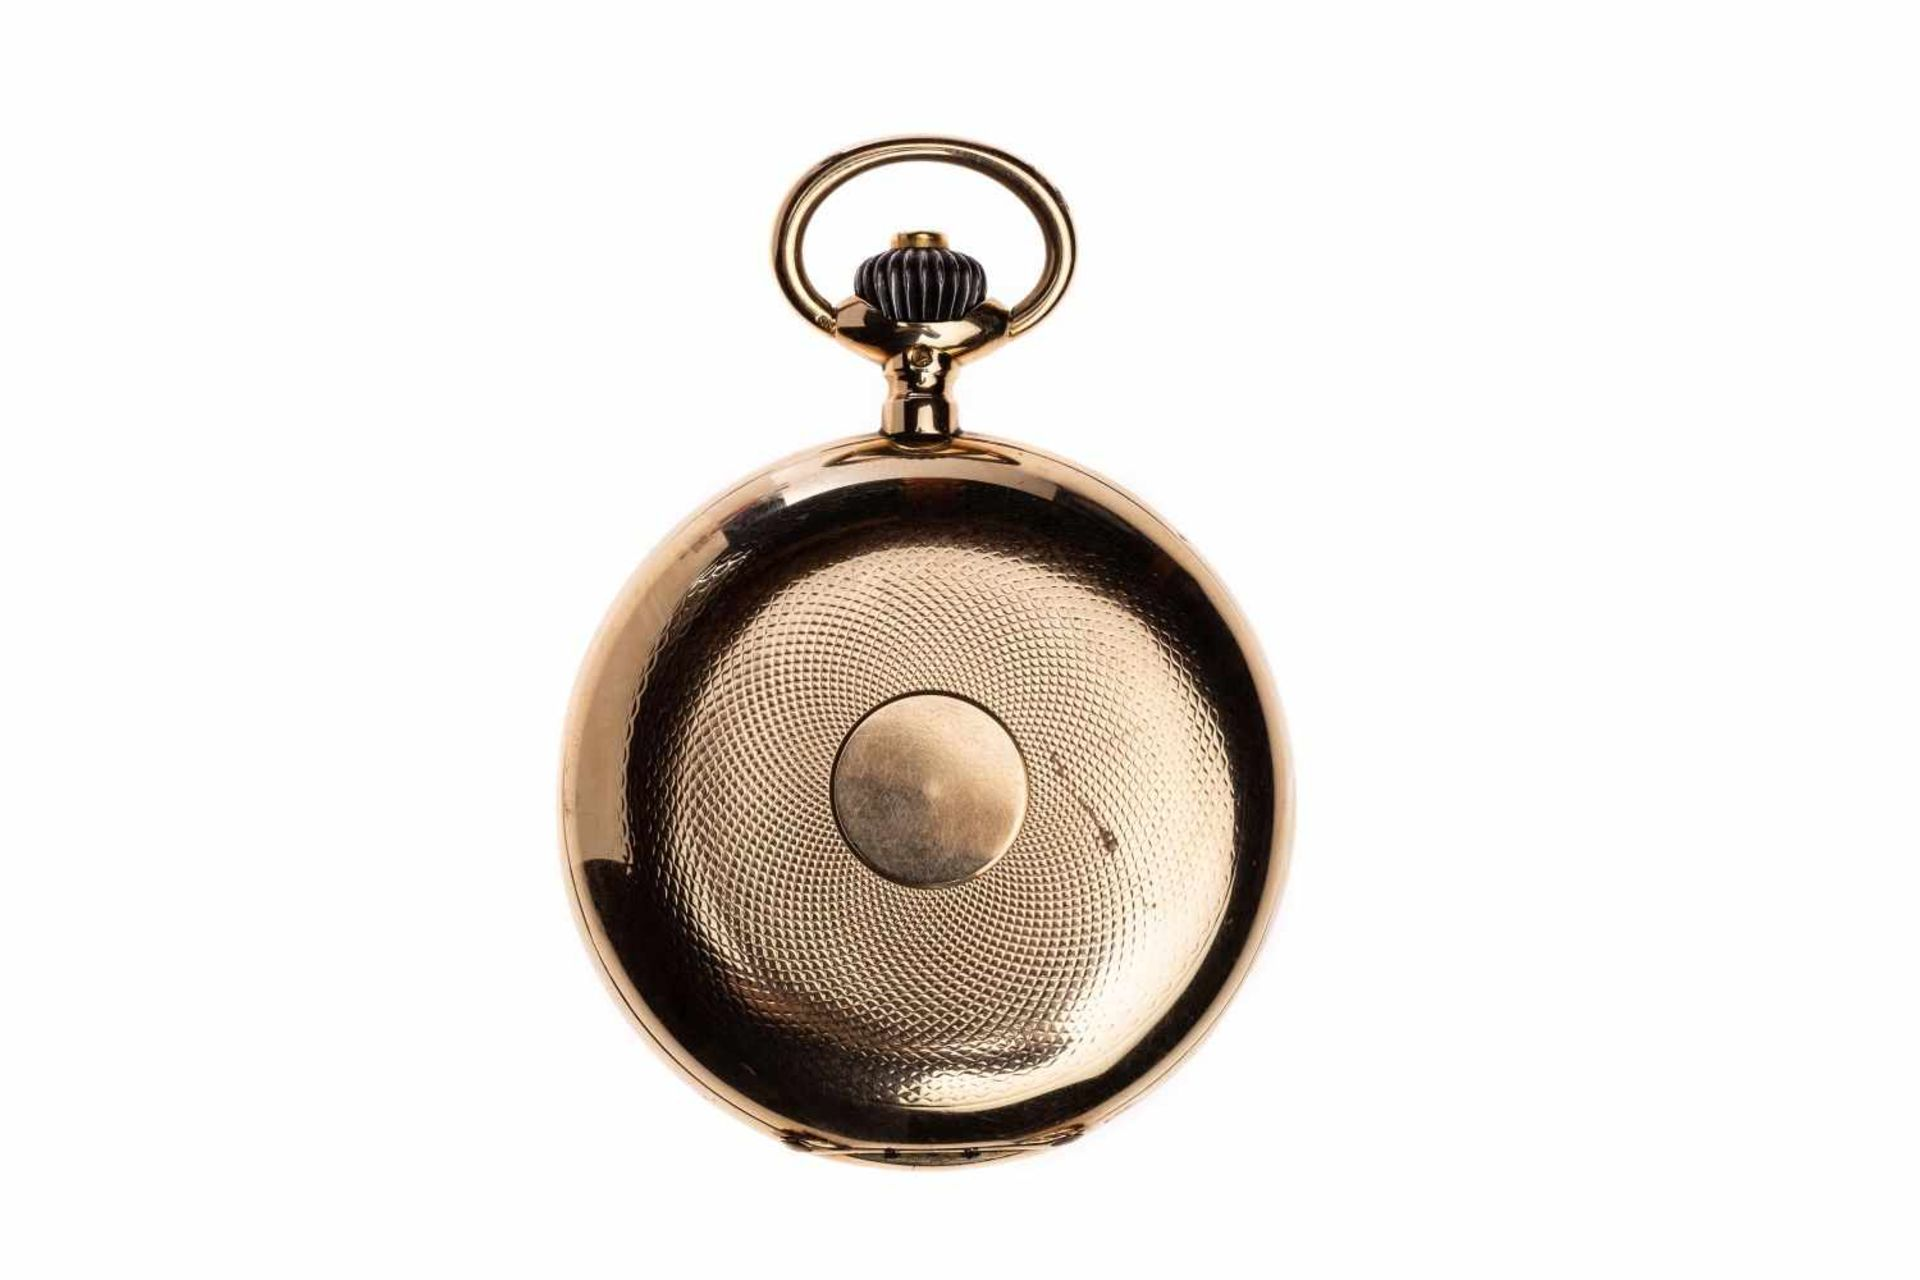 Los 79 - Lepine pocket watch14ct yellow gold watch from Omega with chain so called Lepine pocket